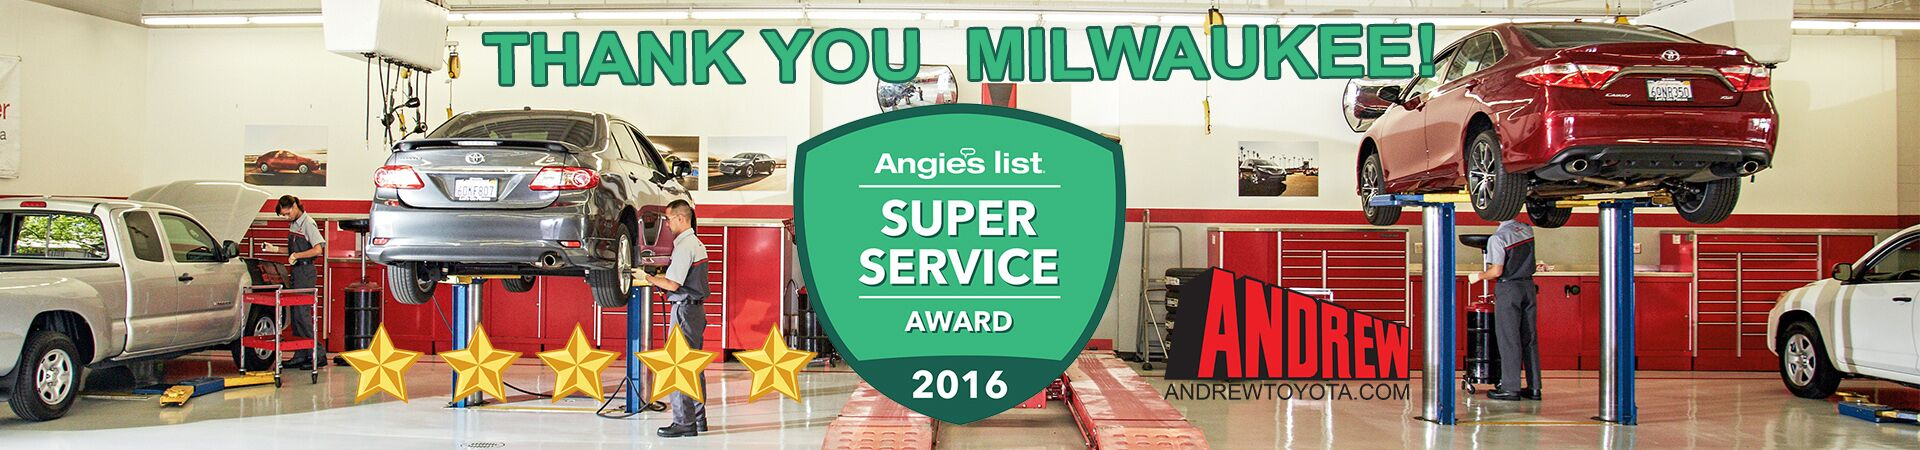 Andrew Toyota Receives the 2016 Angie's List Super Service Award